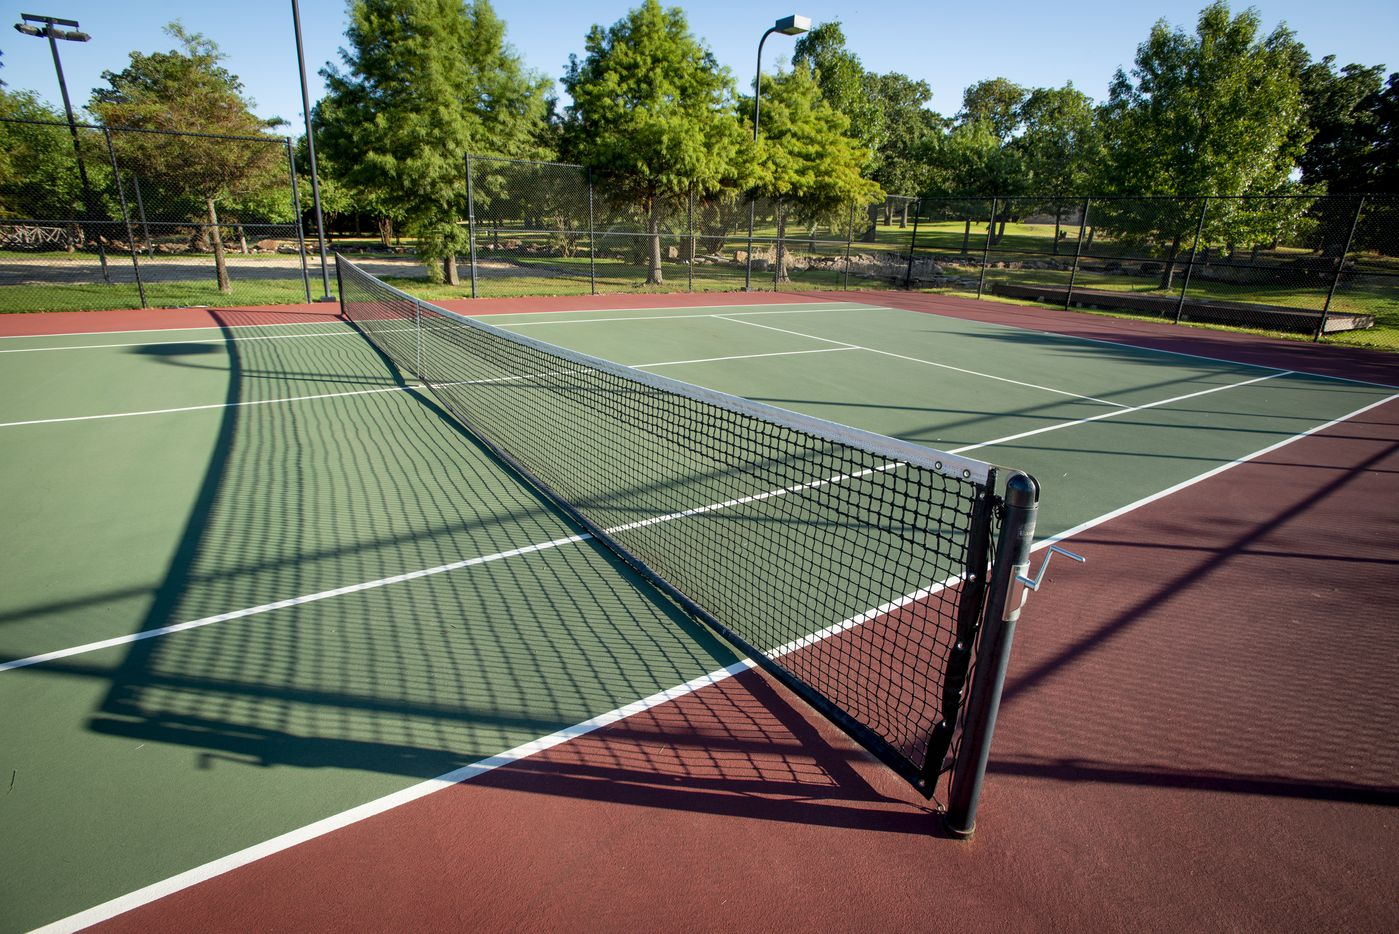 Tennis court at 5101 Kensington Ct., in Flower Mound, Texas on August 19, 2020. (Robert W. Hart/Special Contributor)